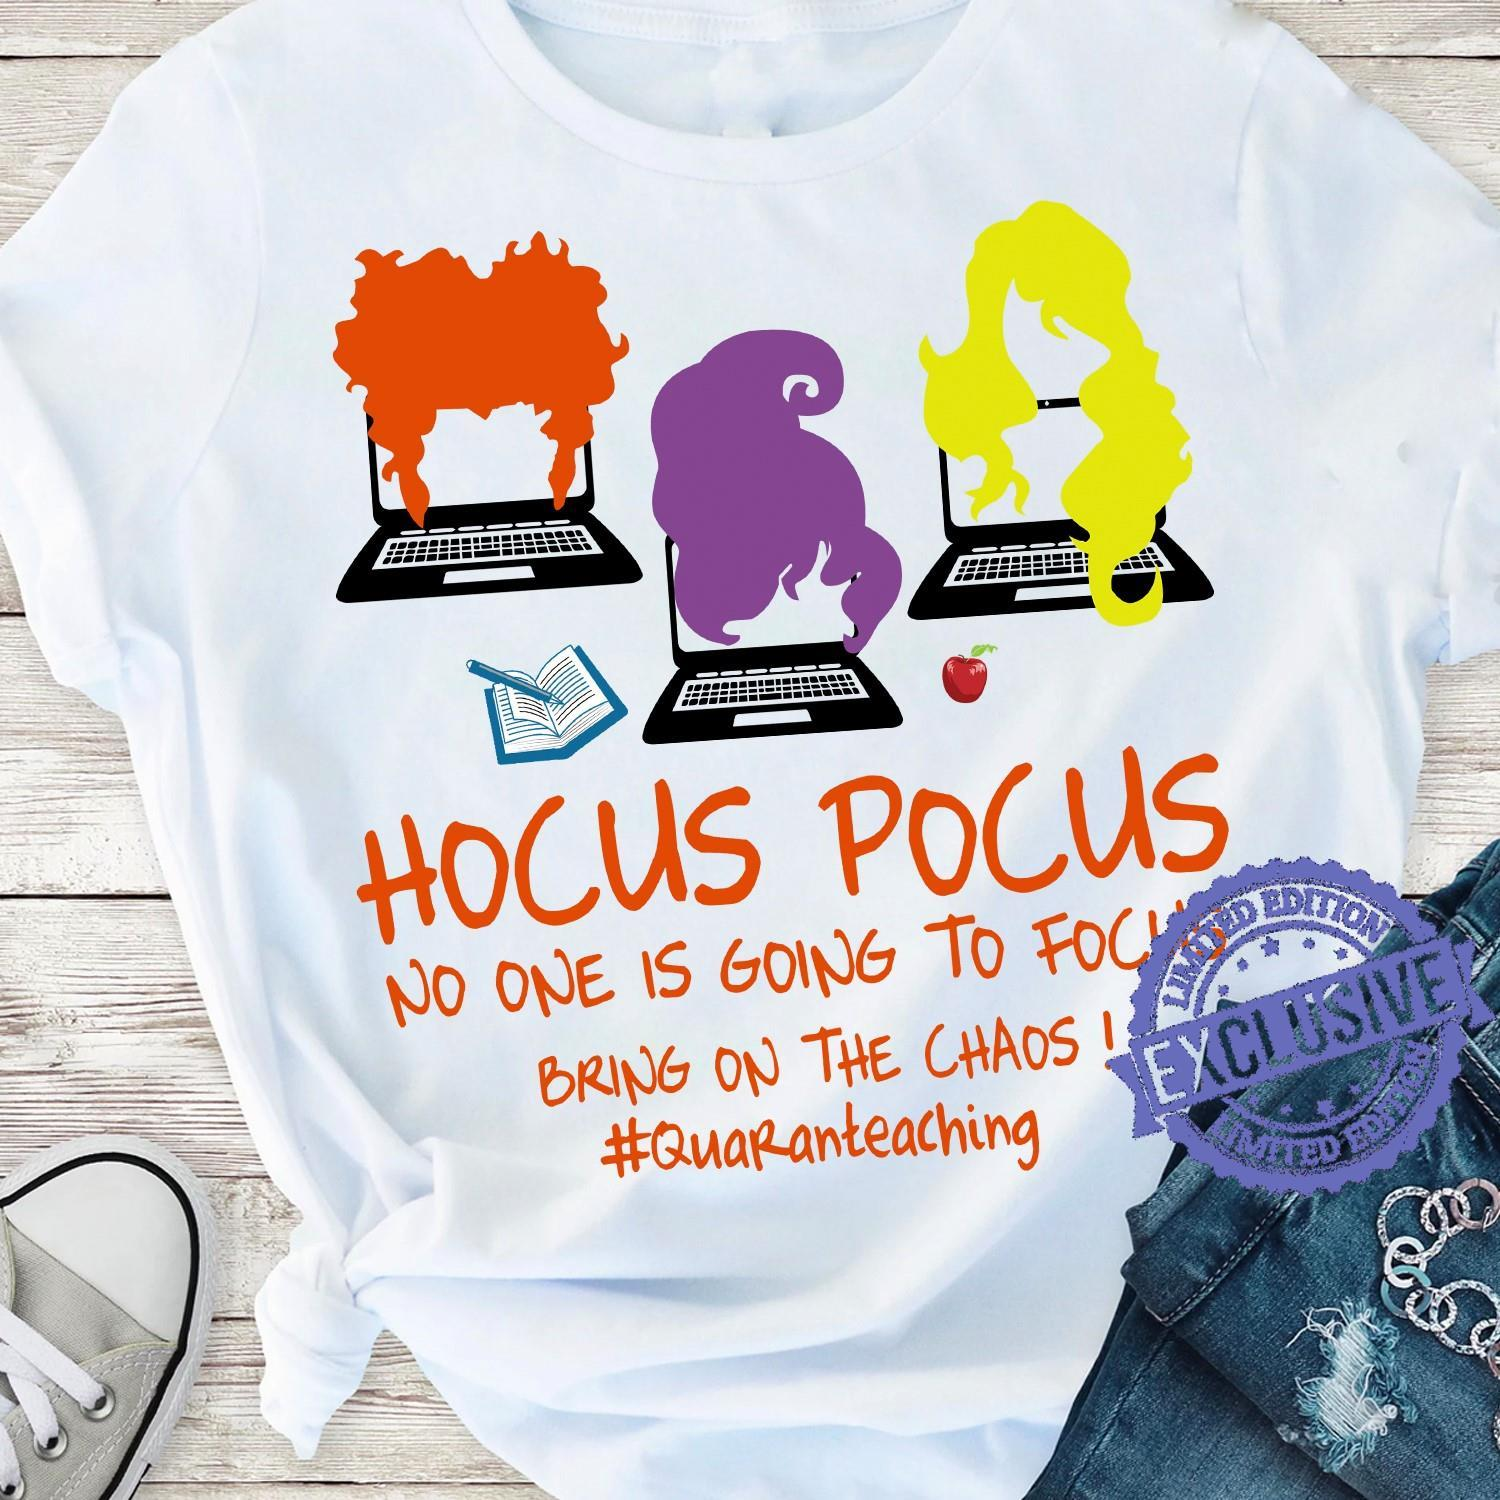 Hocus pocus no one is going to focus bring on the chaos quaranteaching shirt